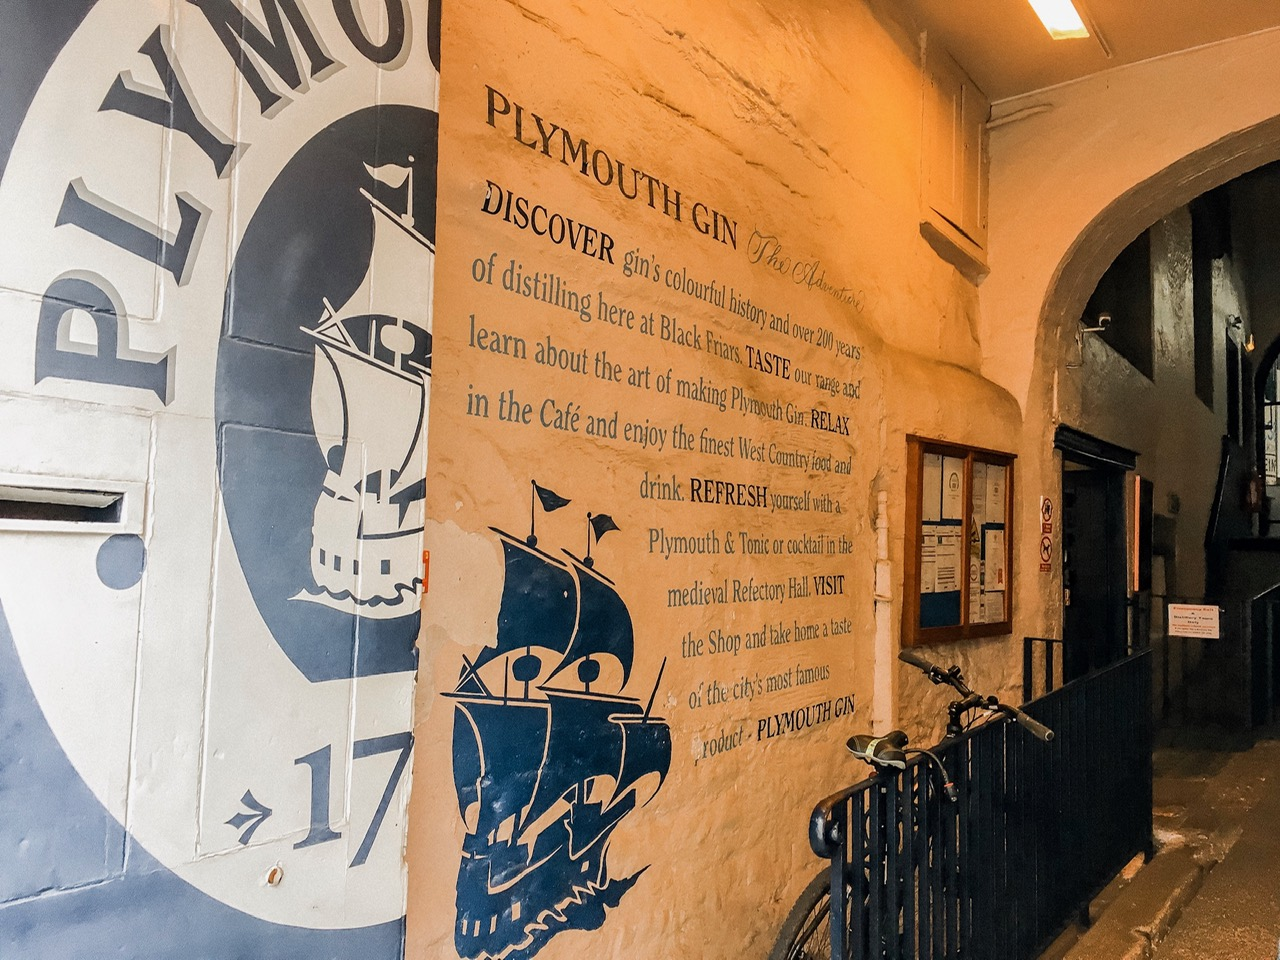 Day trip to Plymouth gin distillery tour